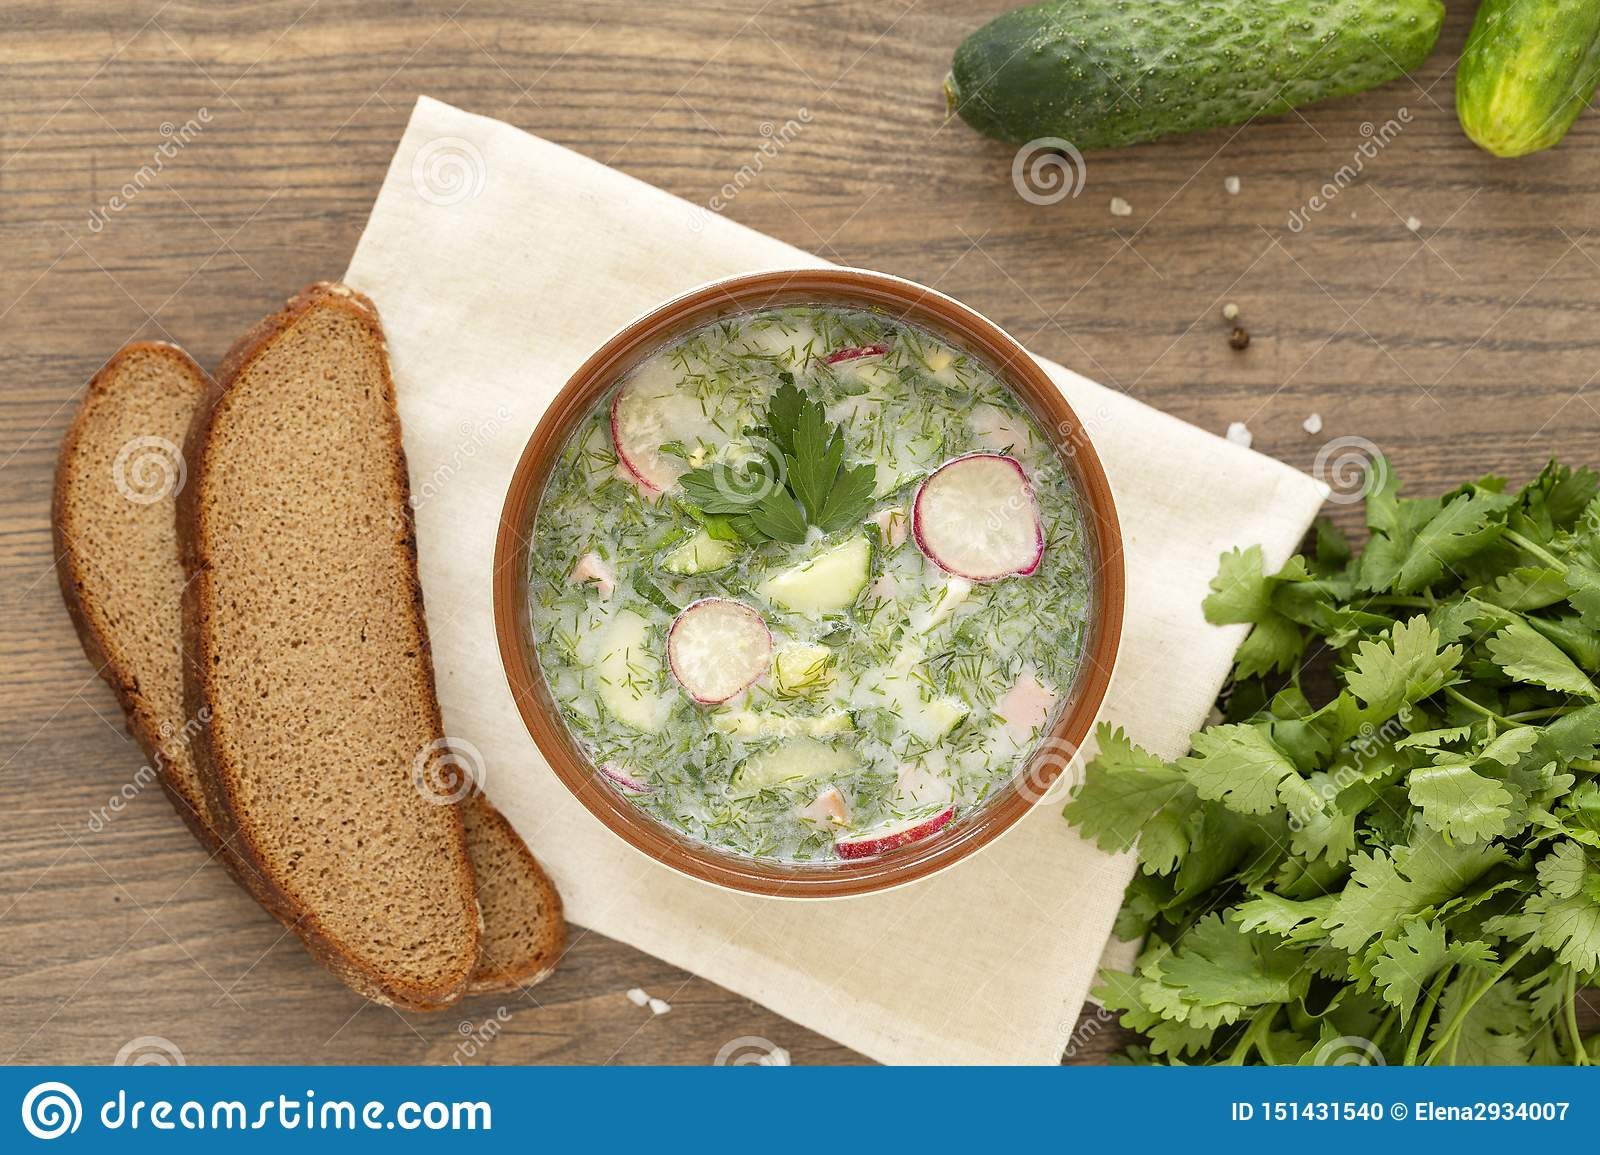 Summer yogurt cold soup with radish, cucumber, and dill on wooden table. Russian cold vegetable soup on yogurt.